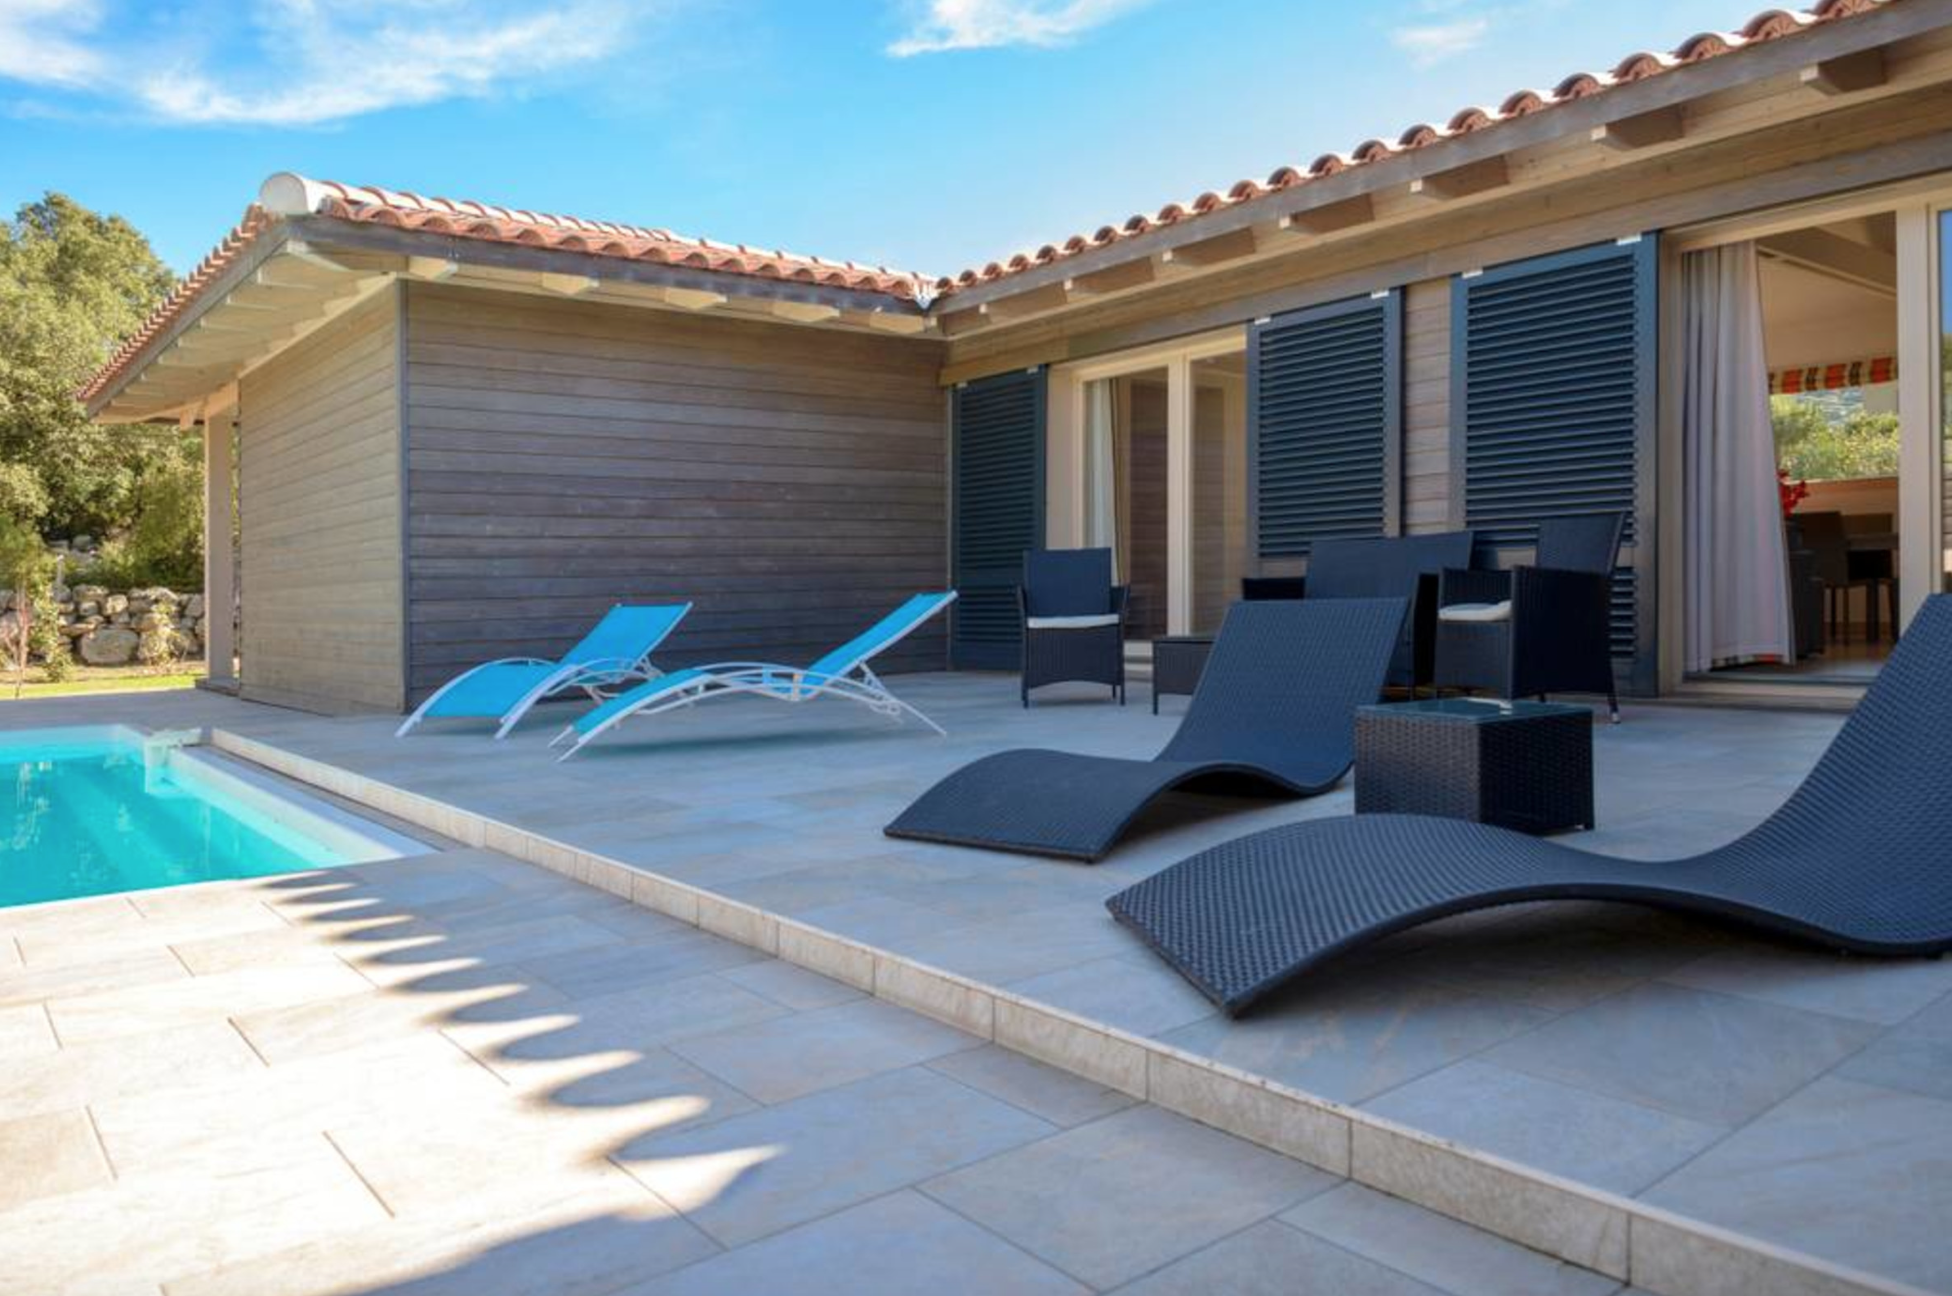 Villa 8 10 Pers With Heated Private Pool